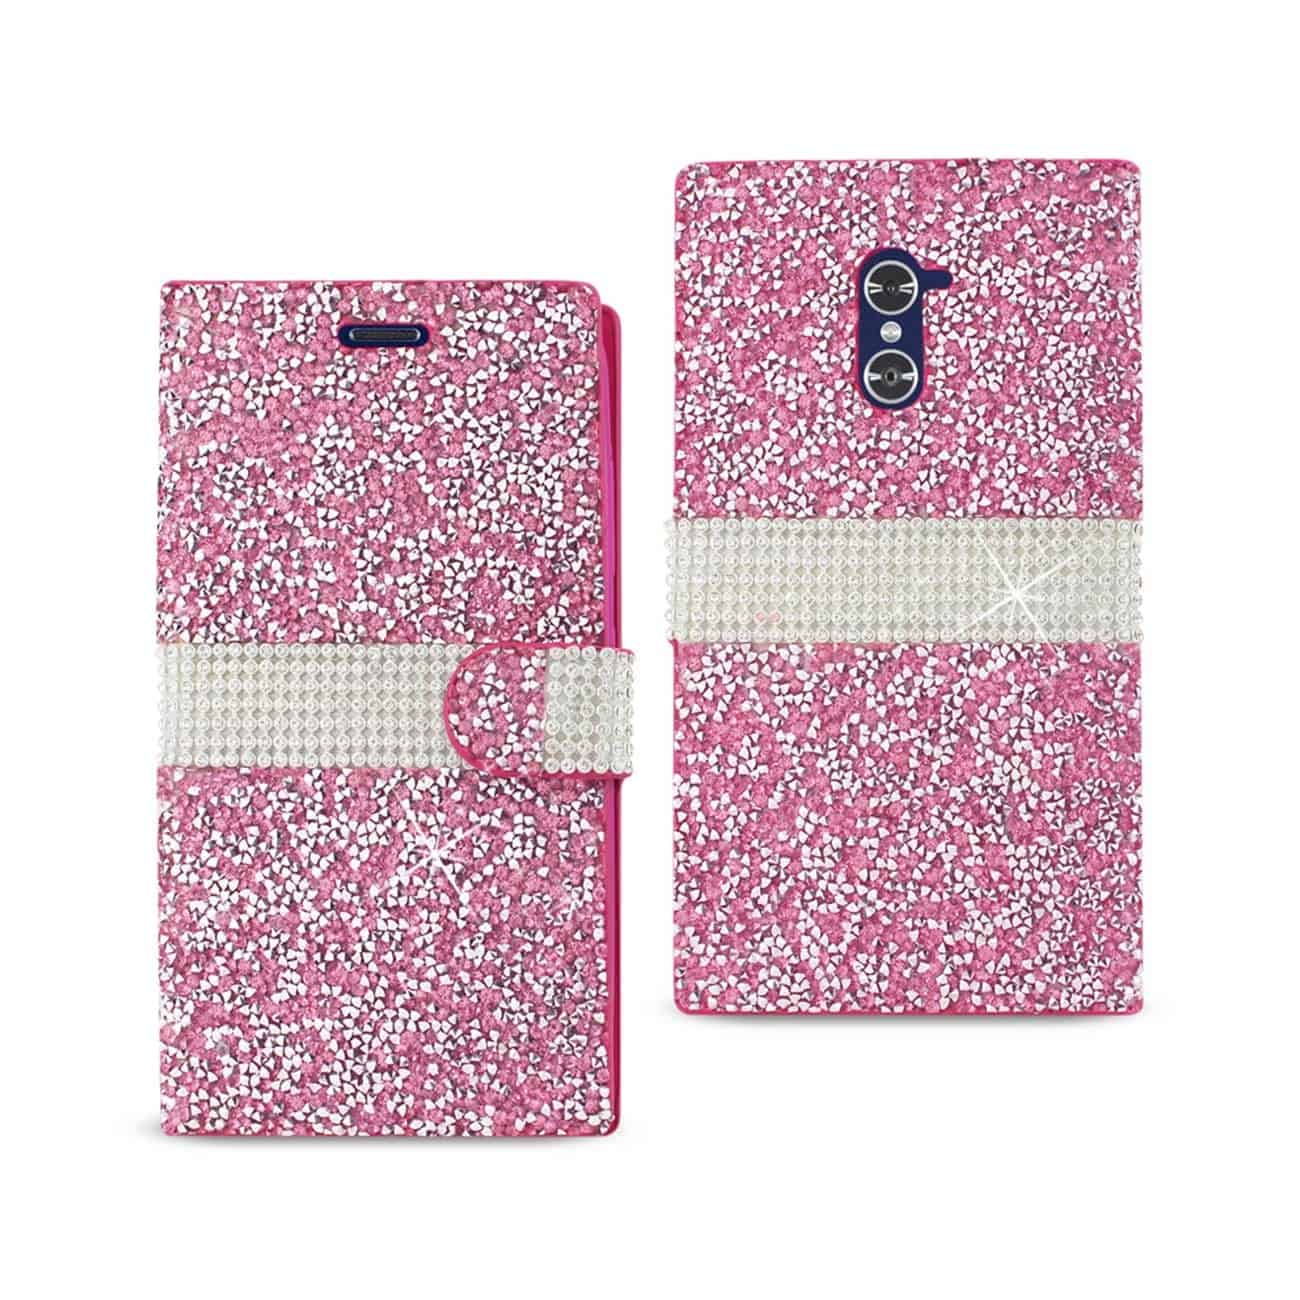 ZTE GRAND X MAX 2 JEWELRY RHINESTONE WALLET CASE IN PINK